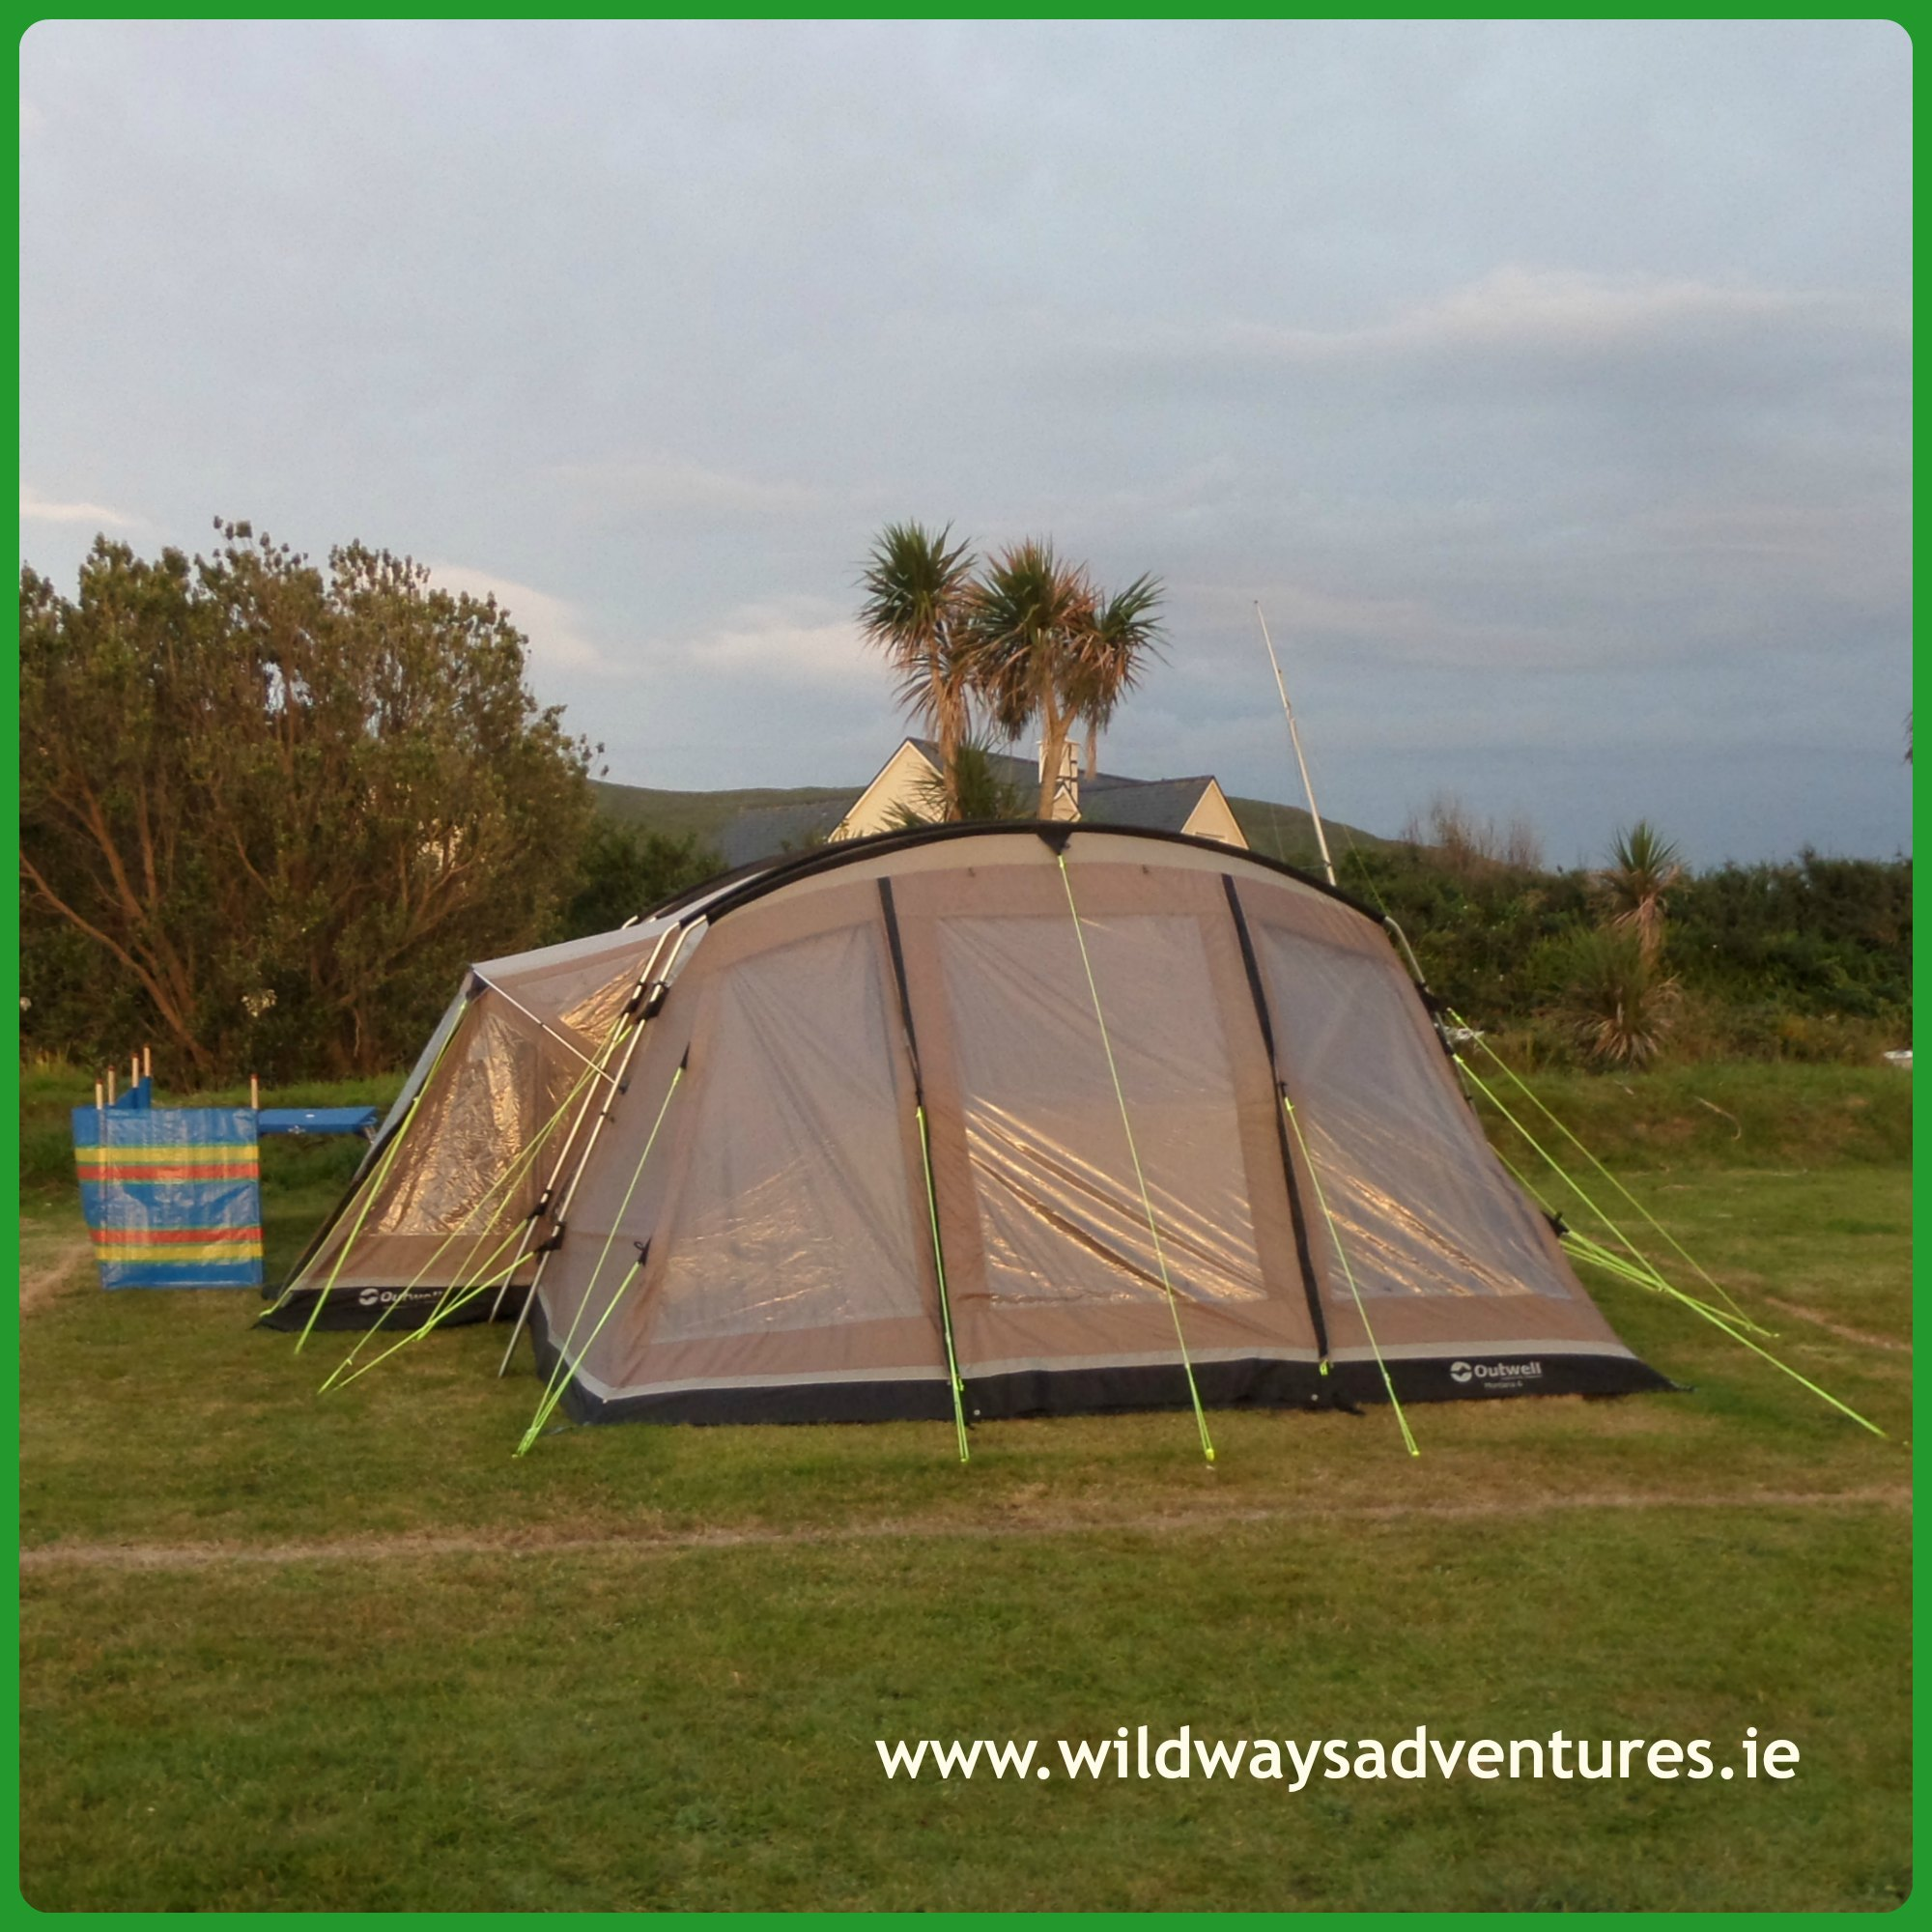 Family Tent & 5 Reasons - Family Camping in Ireland | Wildways Adventures